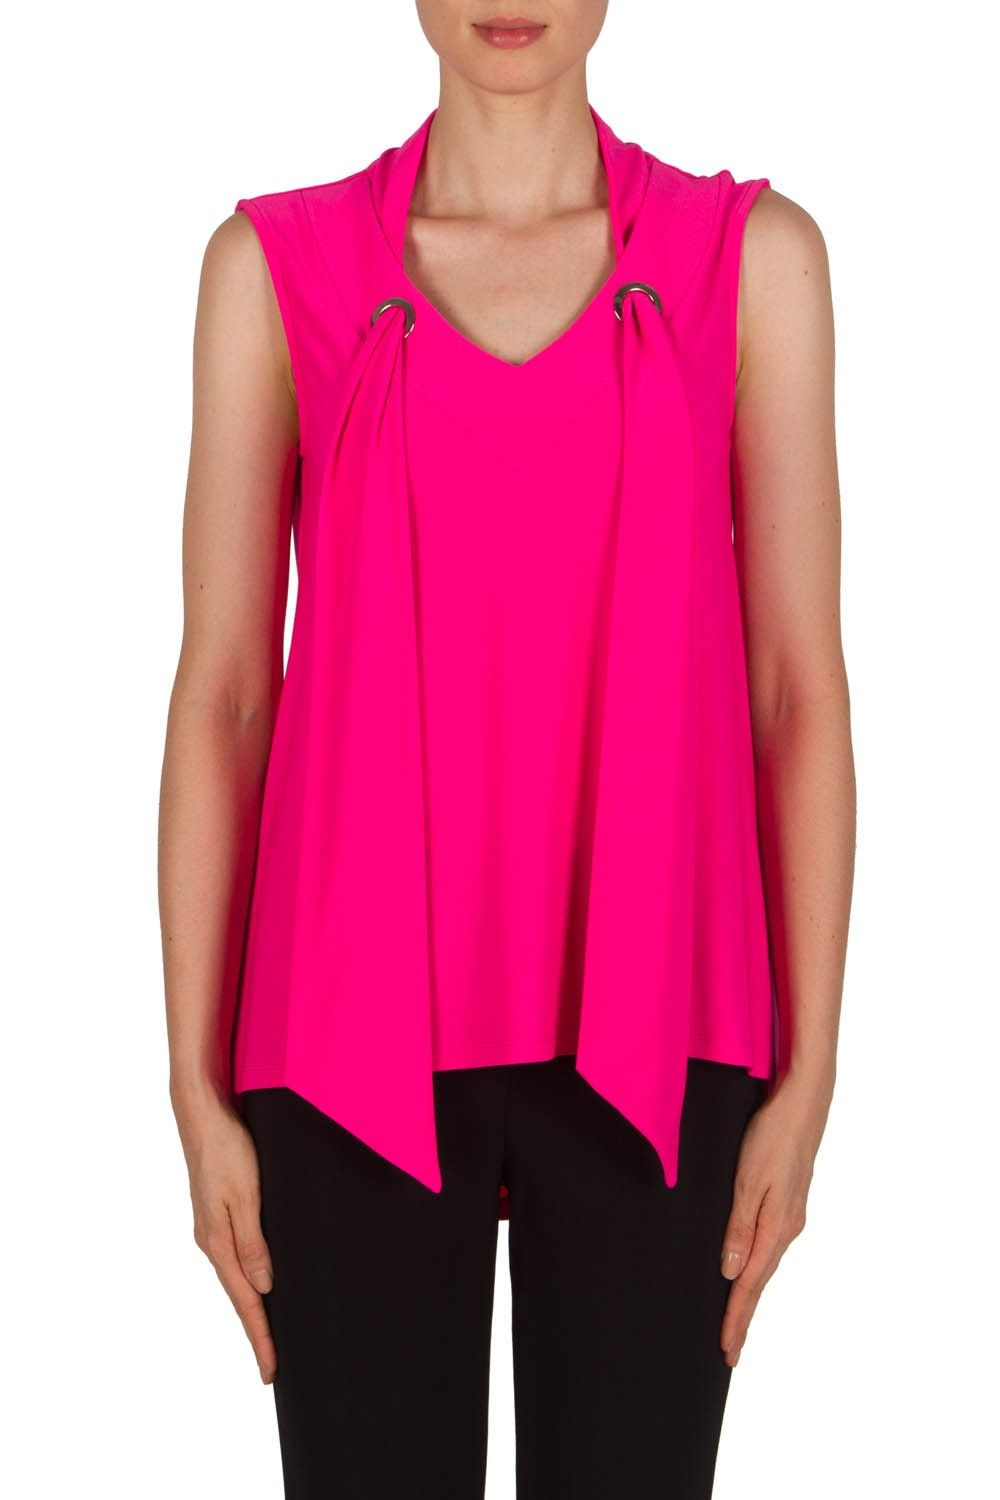 small resolution of style number 181118 color neon pink material 96 polyester 4 spandex